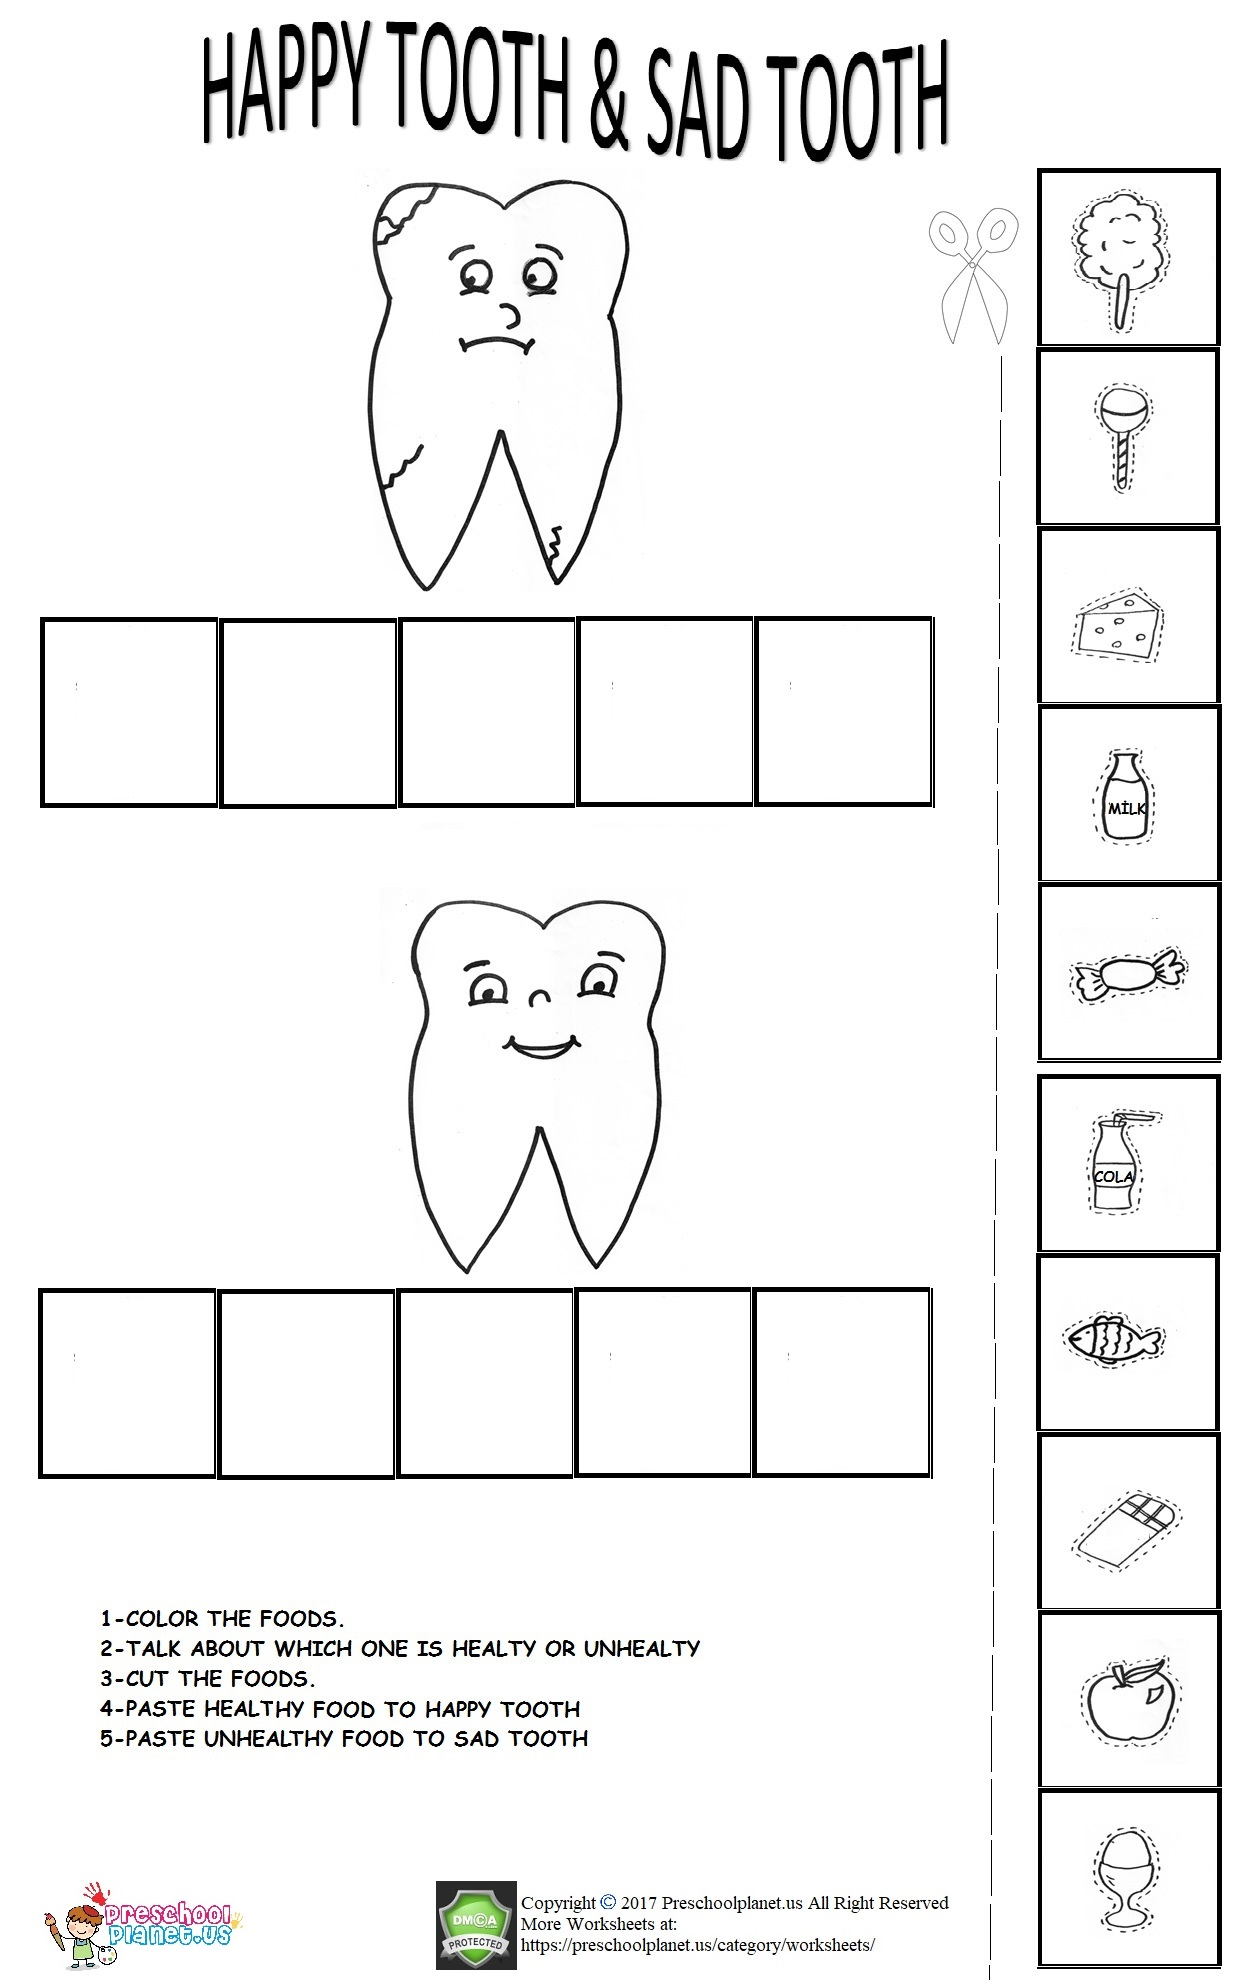 Dental Health Week Worksheet For Kids Preschoolplanet